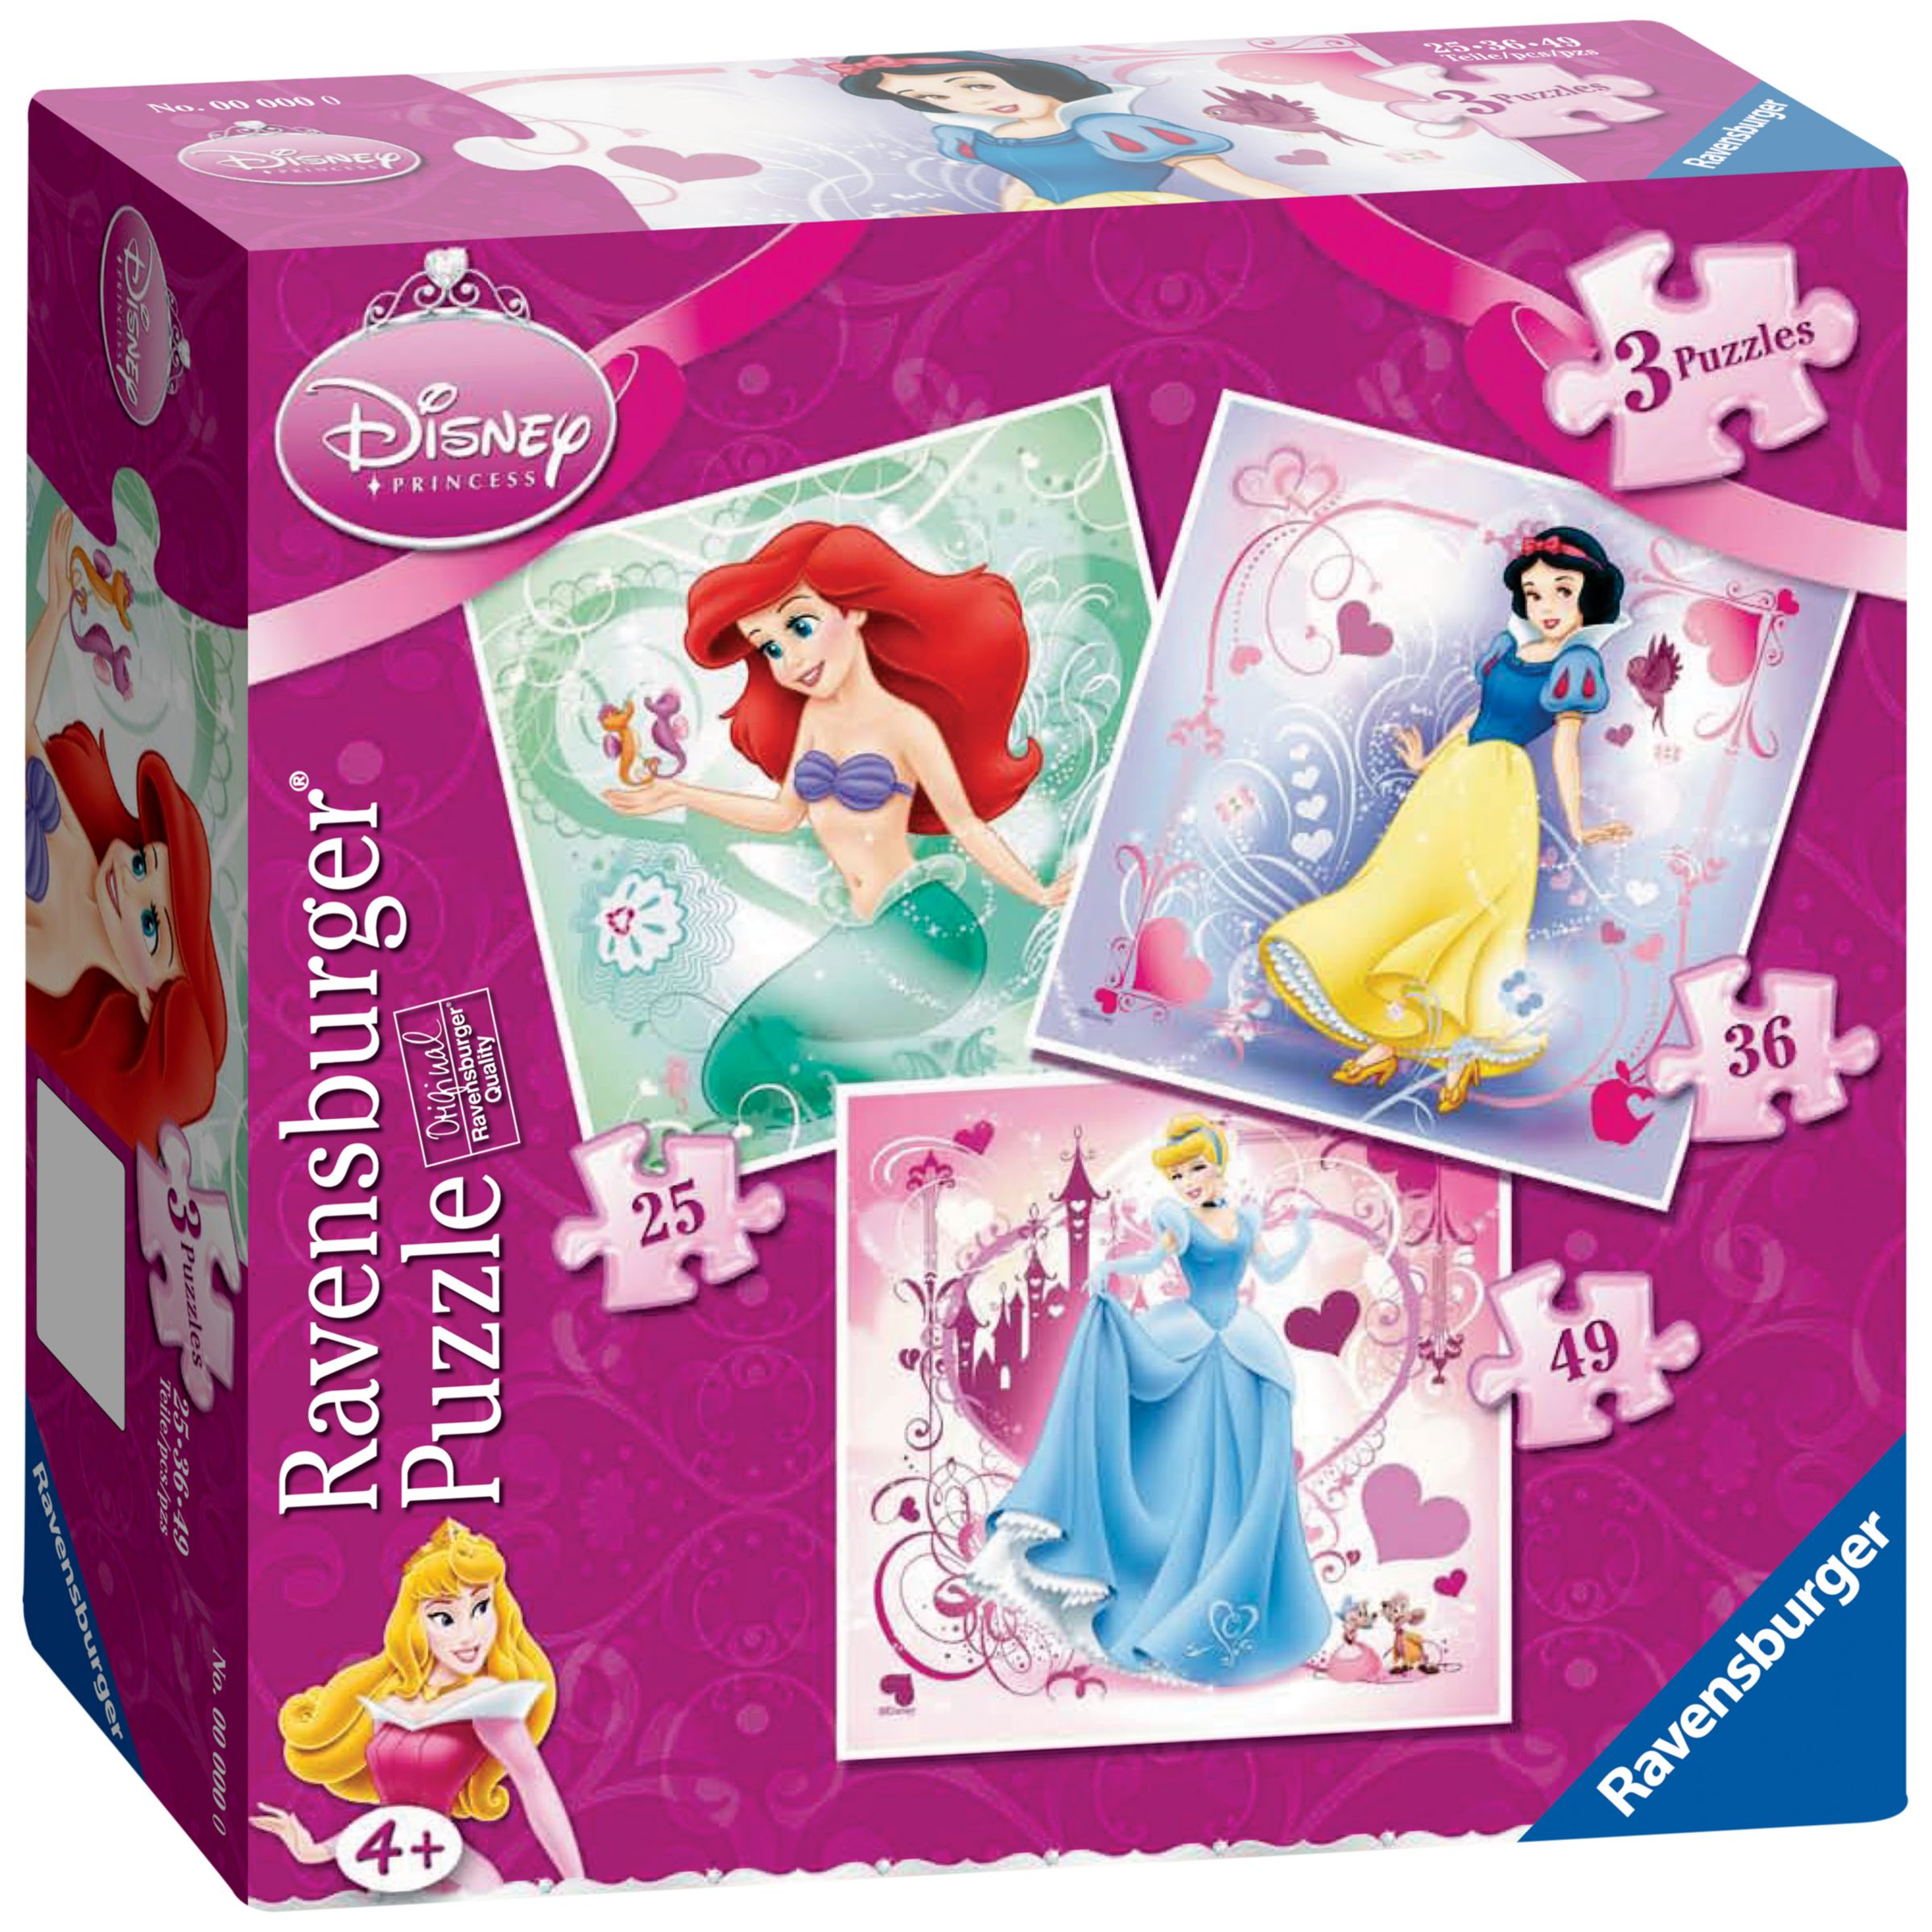 Disney Princess 3 In A Box Jigsaw Puzzles